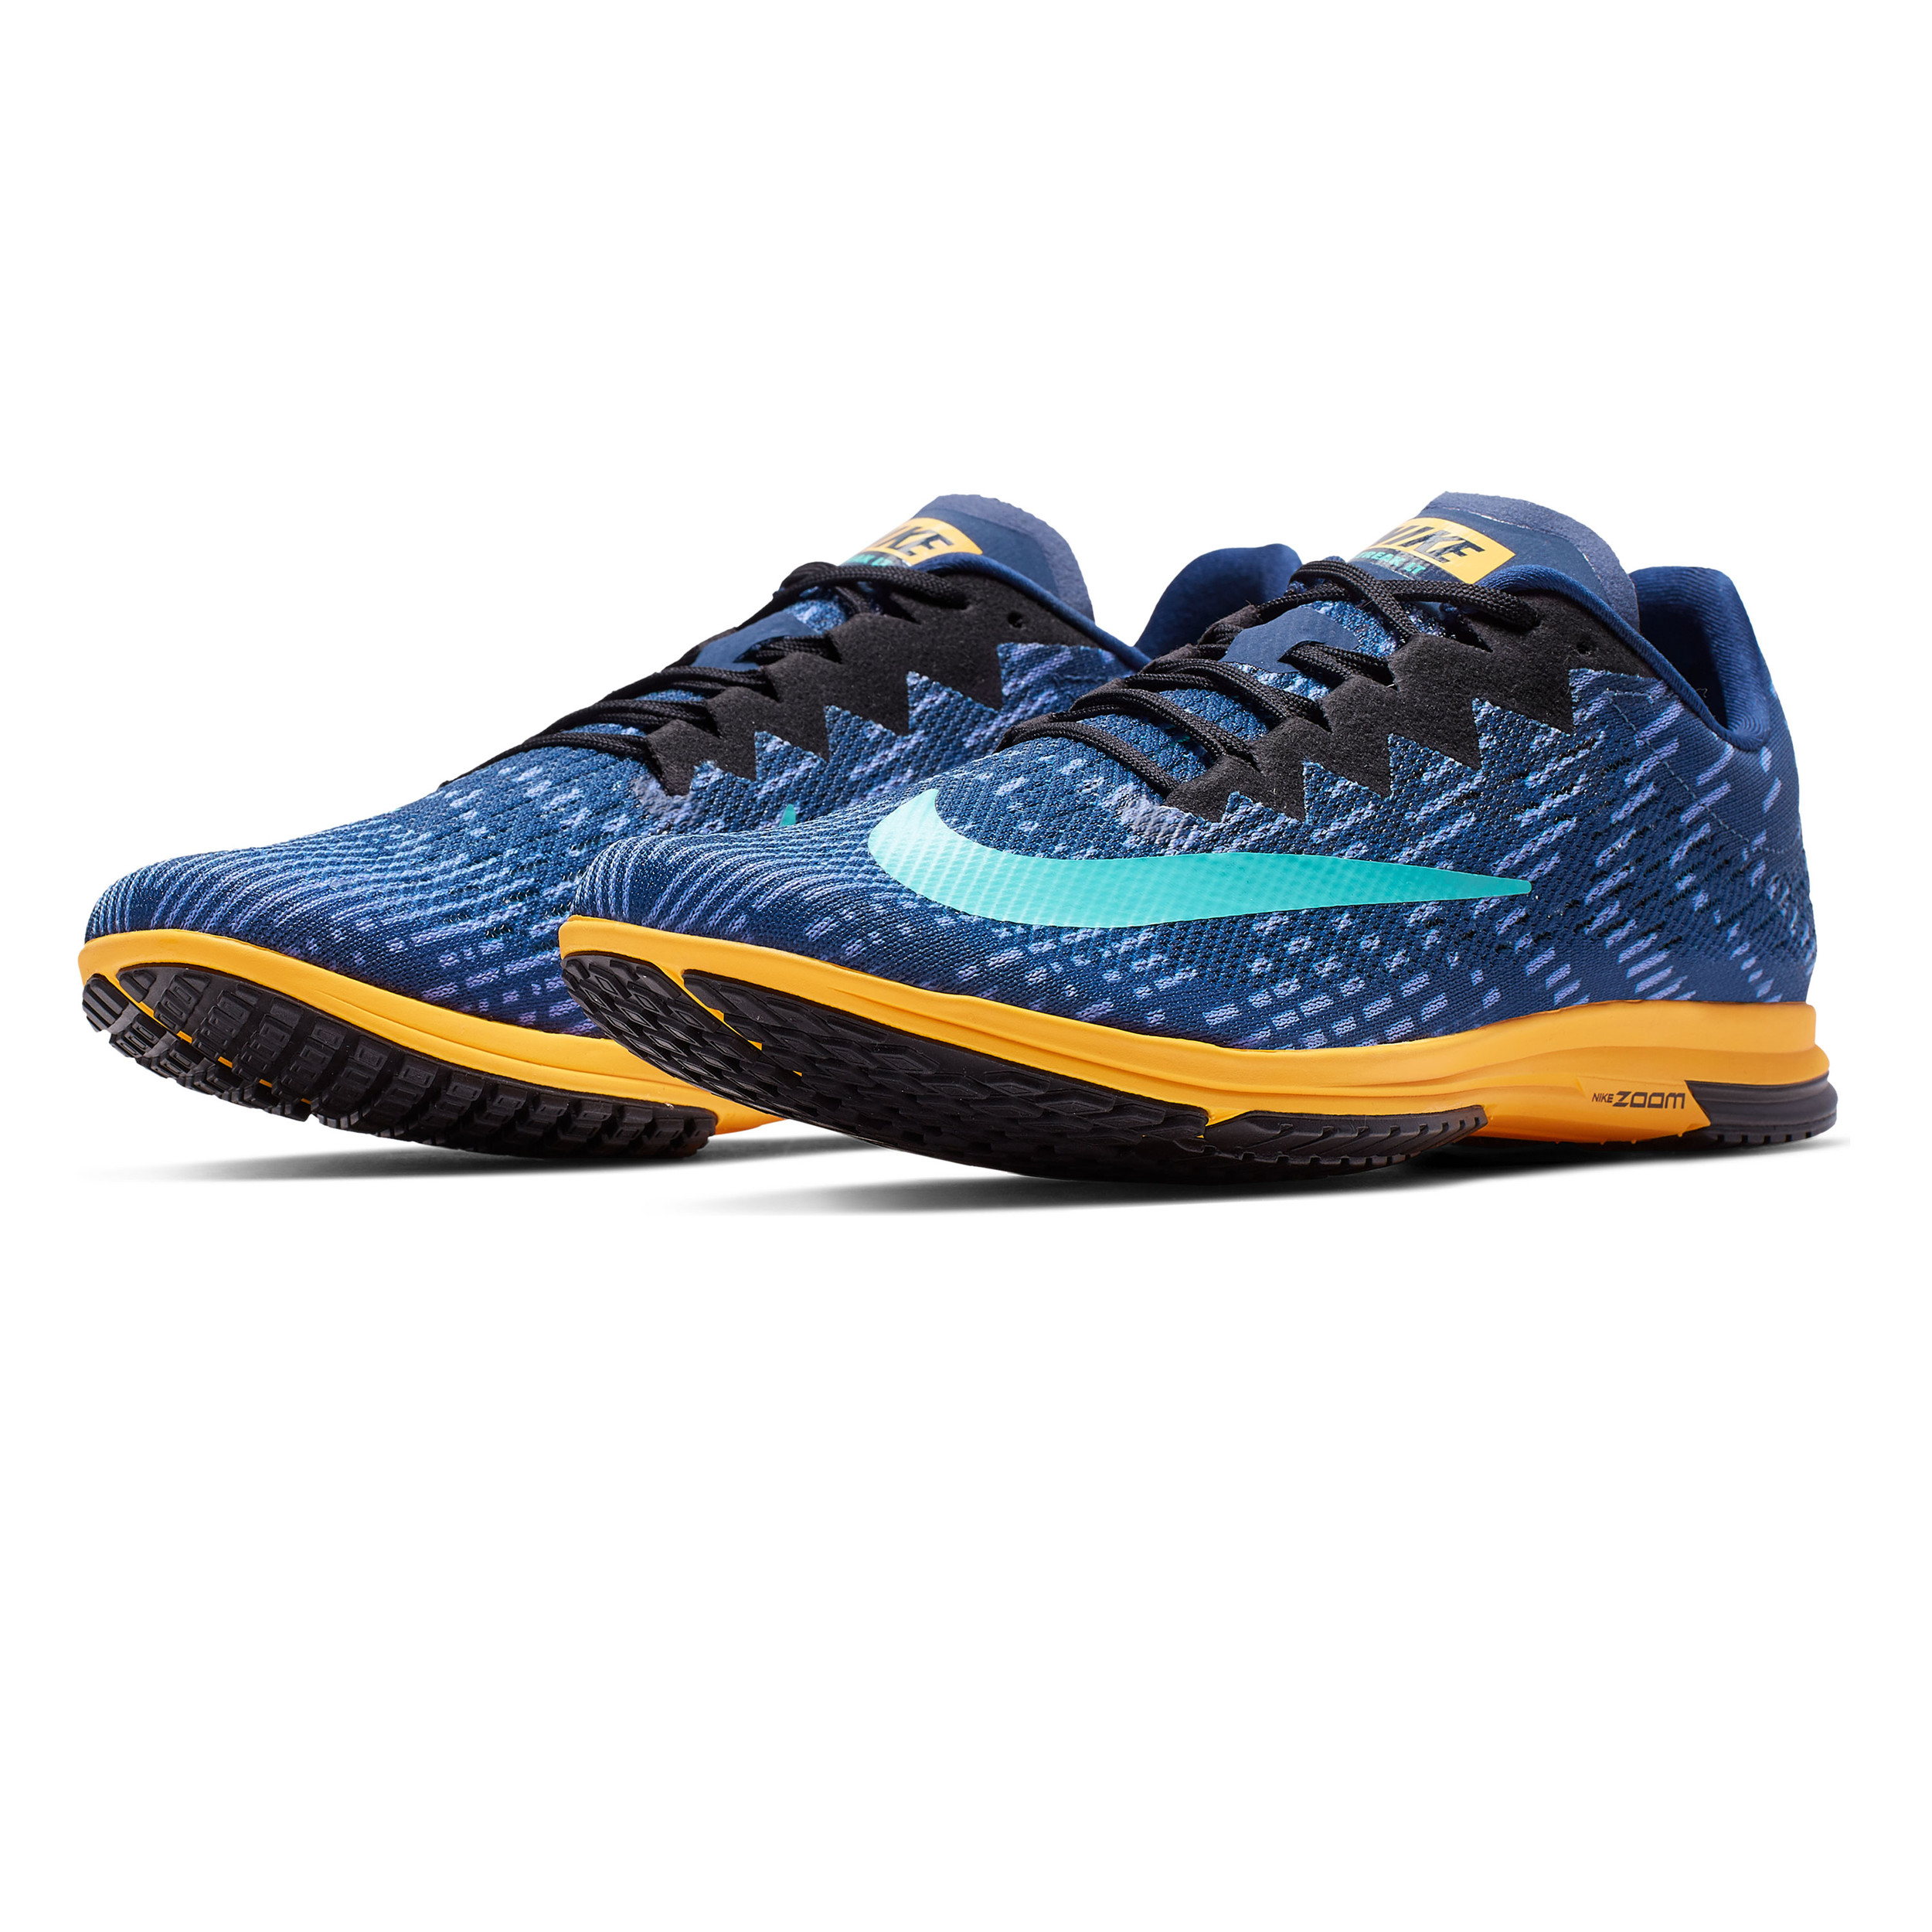 Nike Zoom Streak LT 4 Racing Shoes - SU19